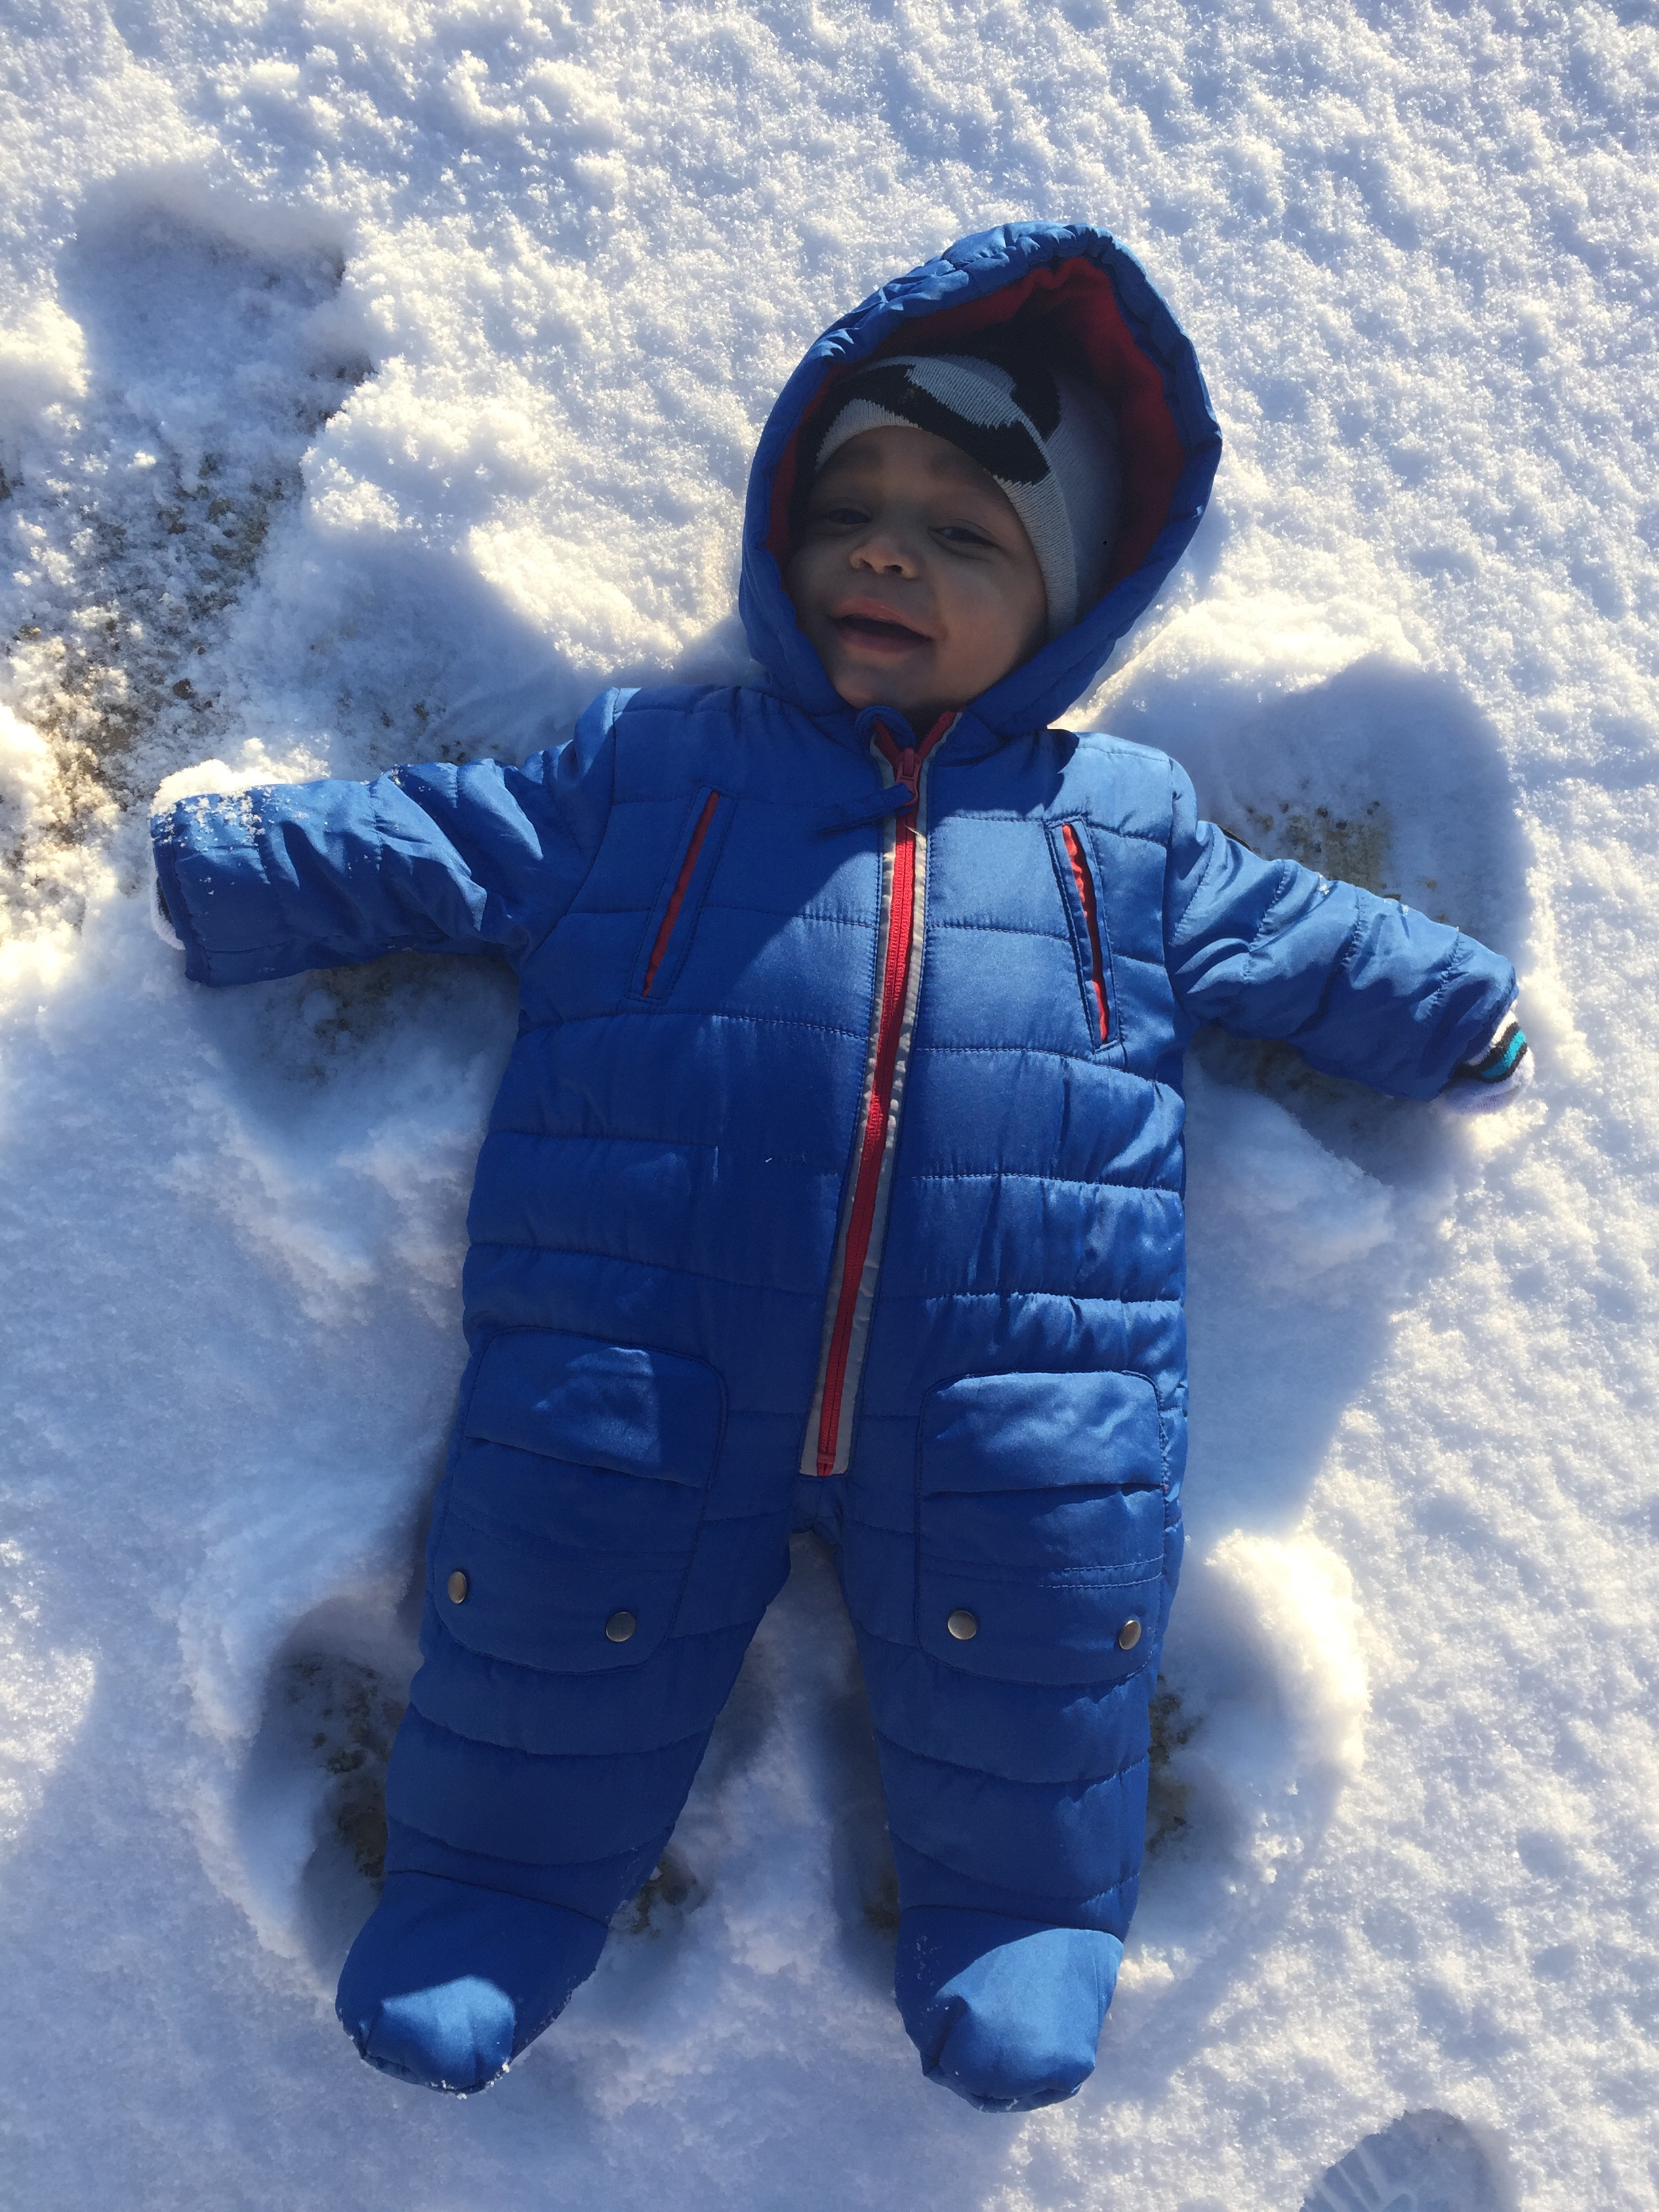 "<div class=""meta image-caption""><div class=""origin-logo origin-image none""><span>none</span></div><span class=""caption-text"">7-month-old Ryan's first snow angel! (Monica Escamilla - ABC11 Eyewitness)</span></div>"